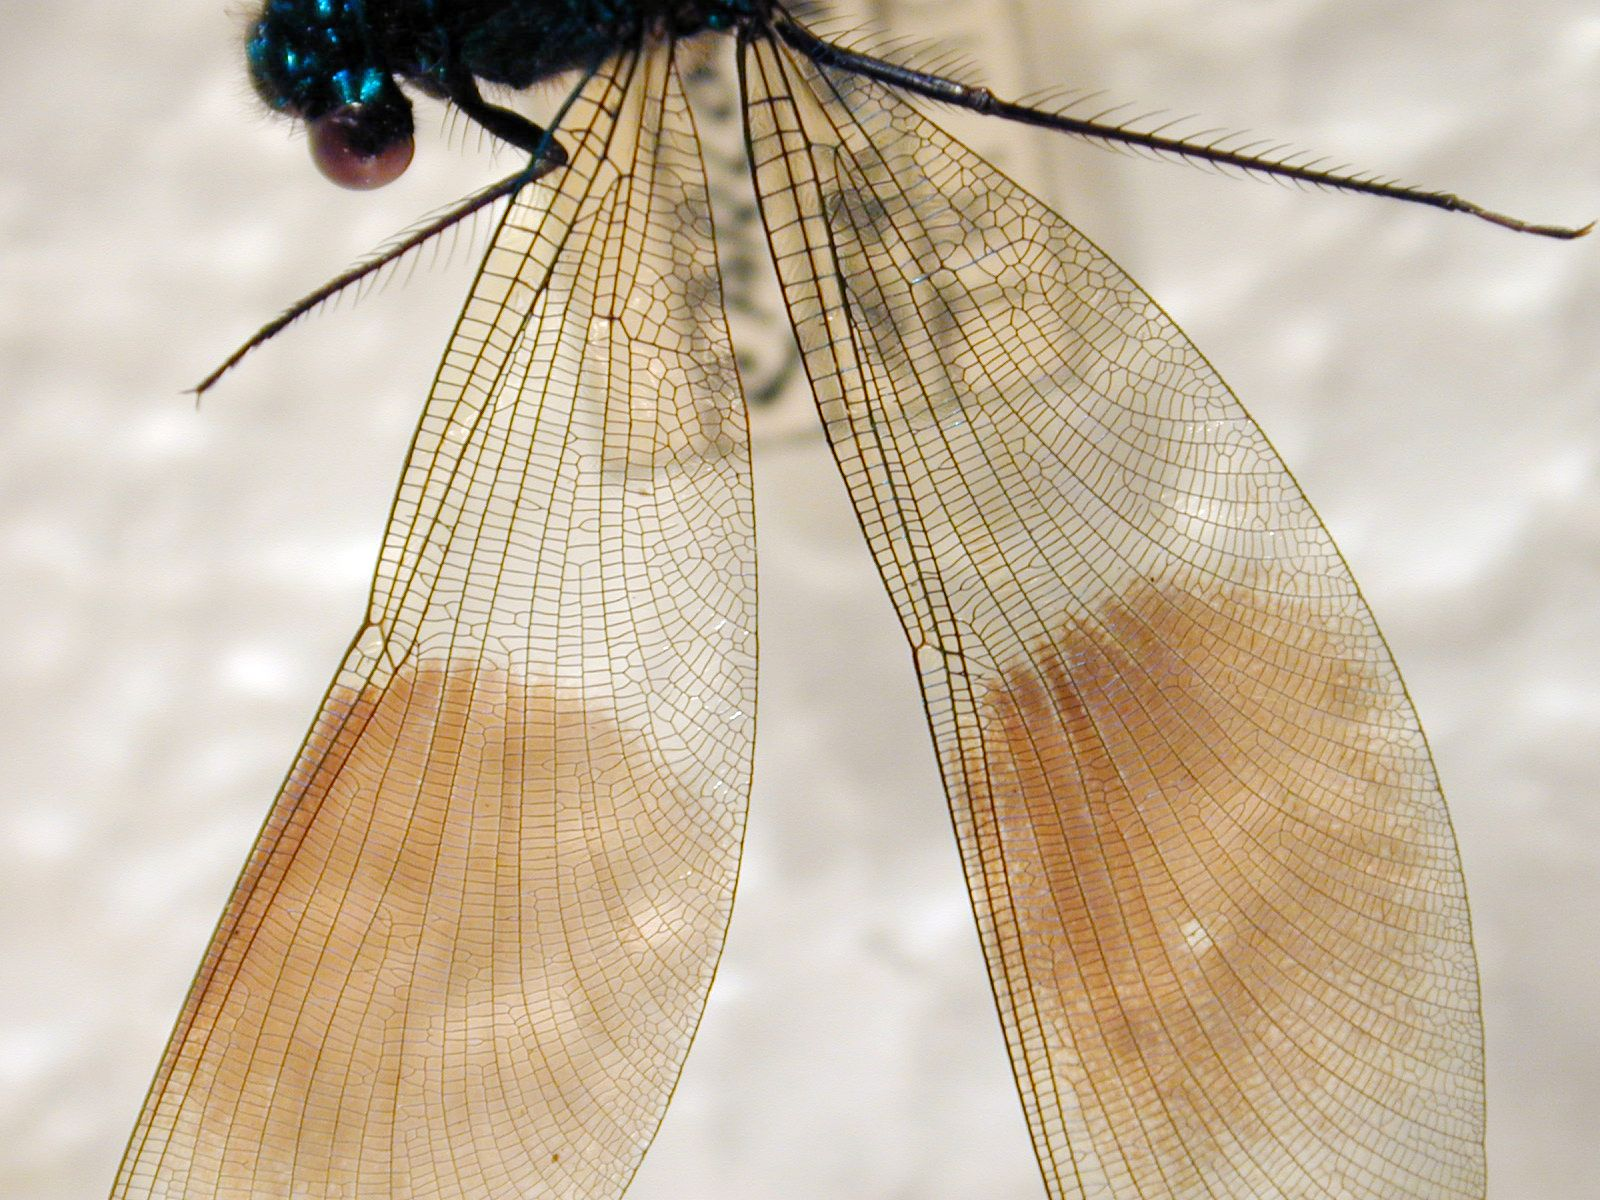 Insect wing texture - photo#28